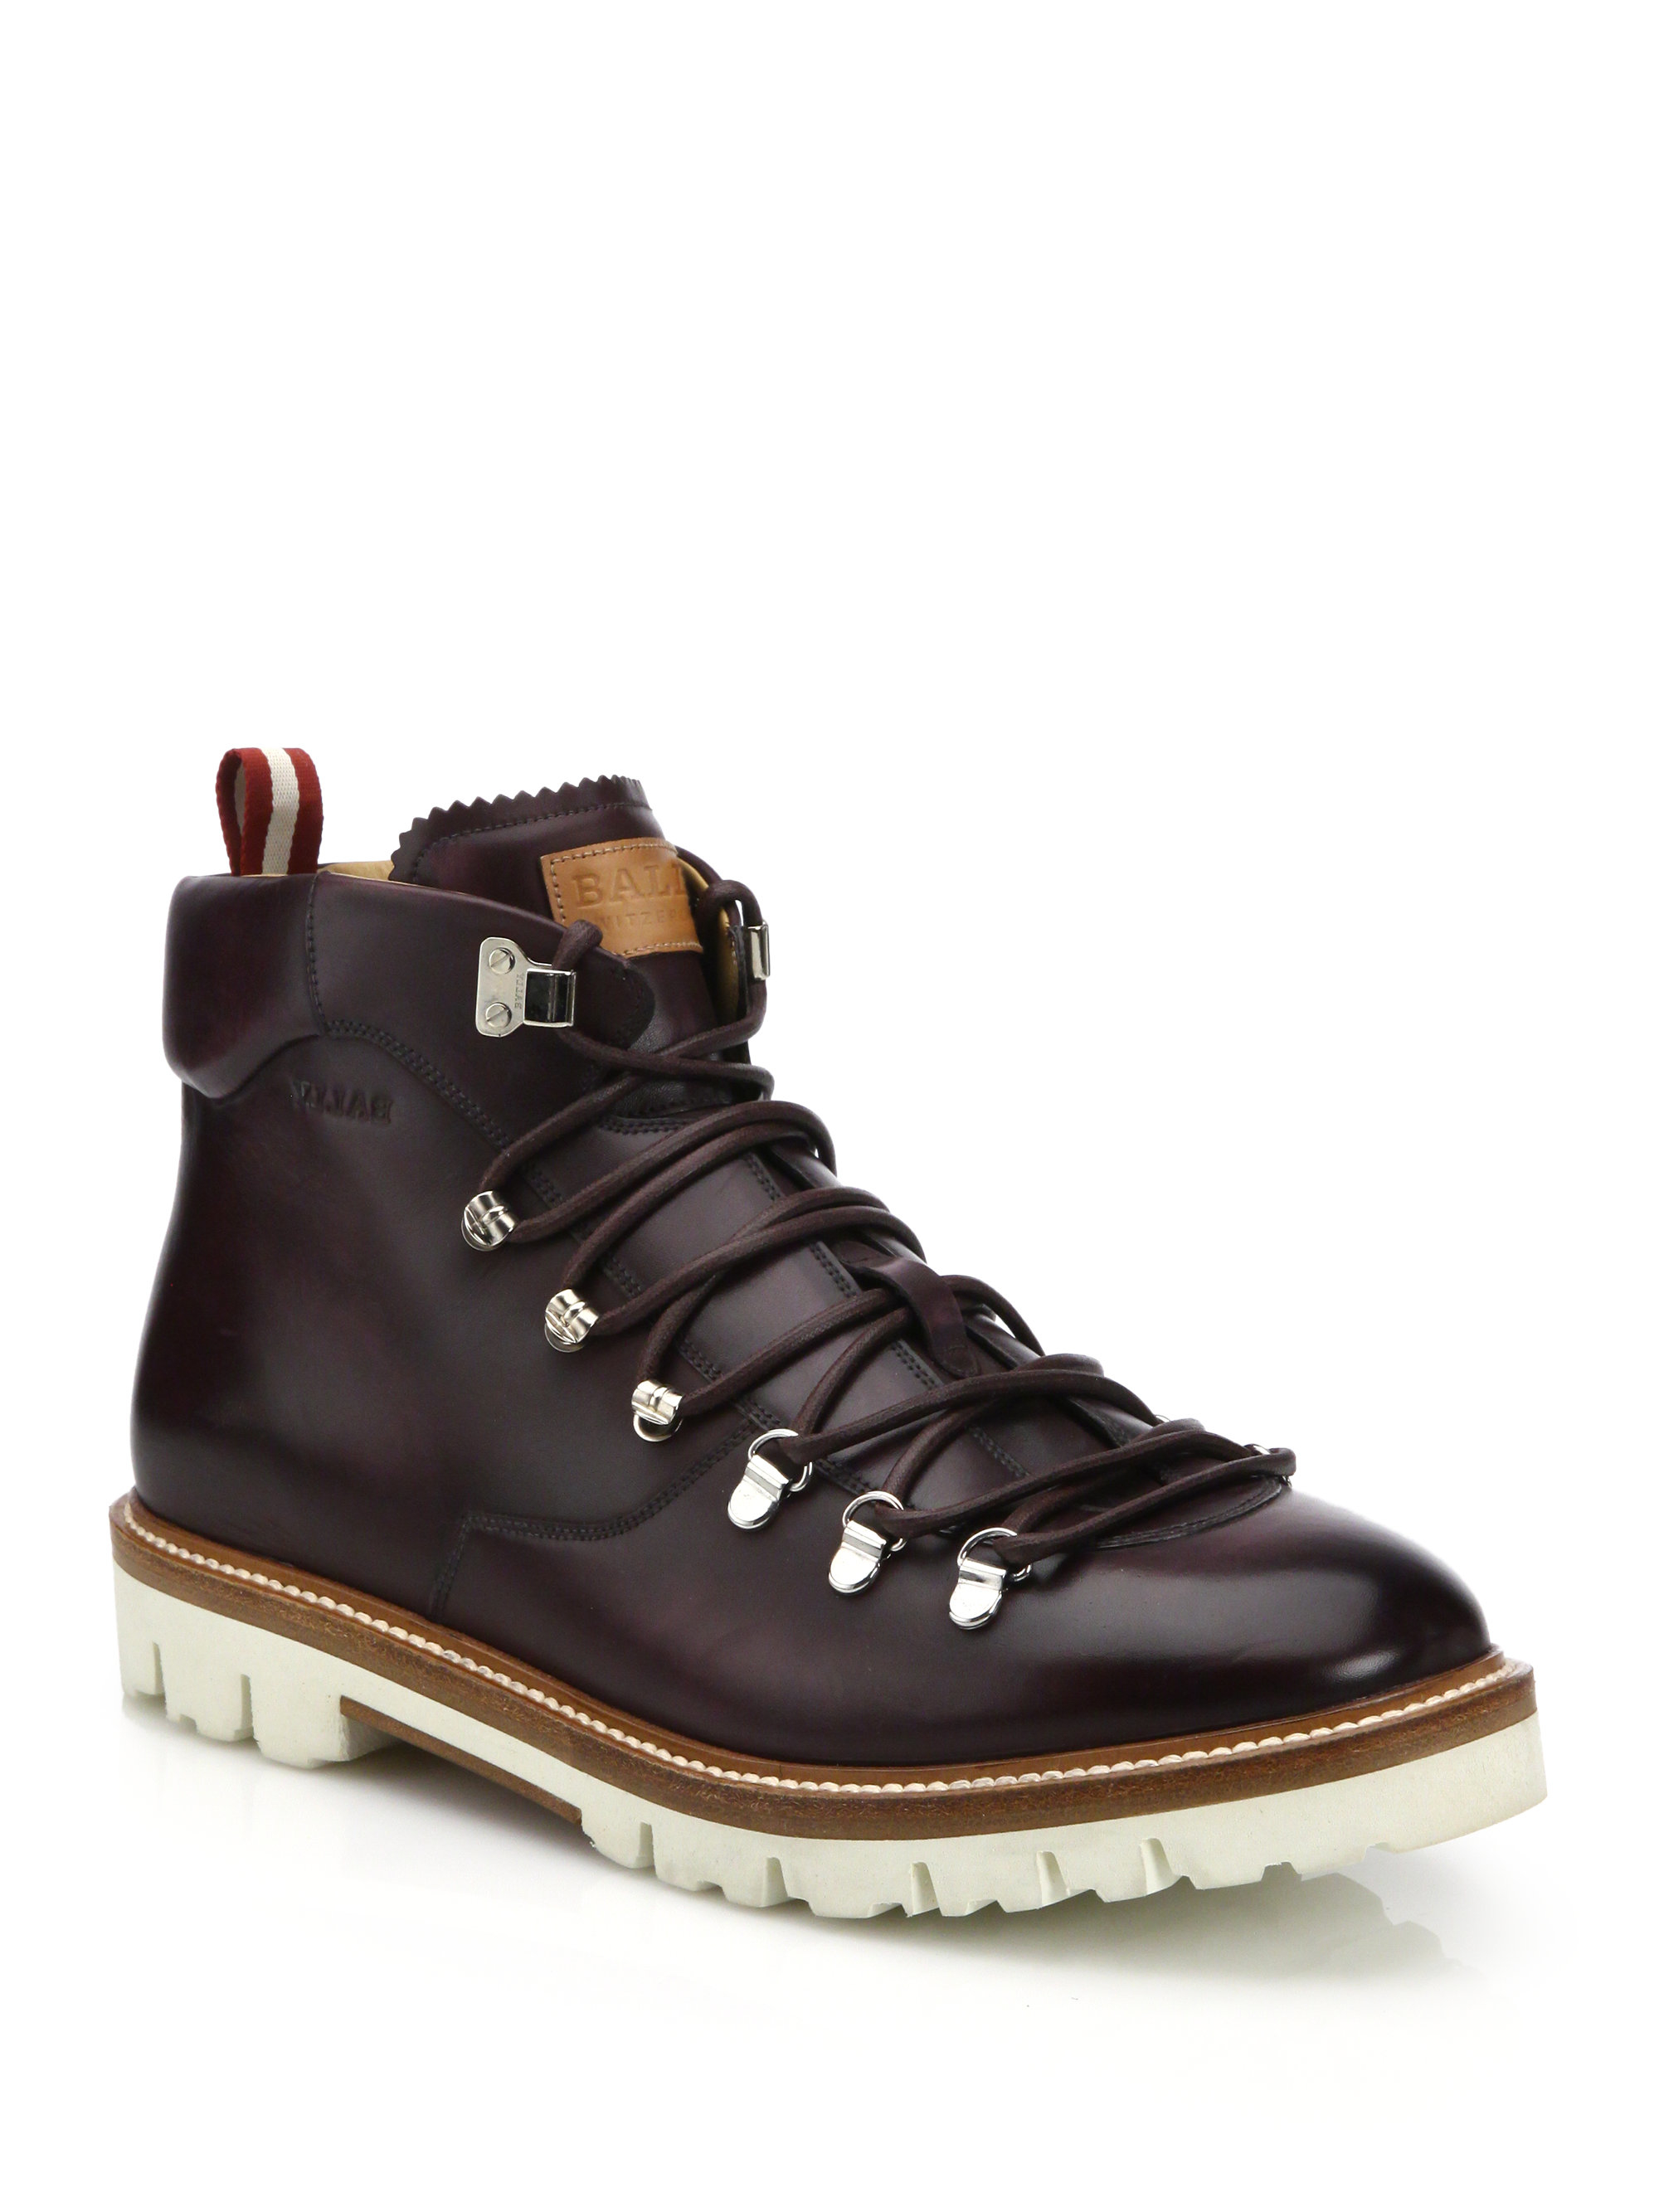 Bally J Cole For Leather Hiking Boots In Red For Men Lyst